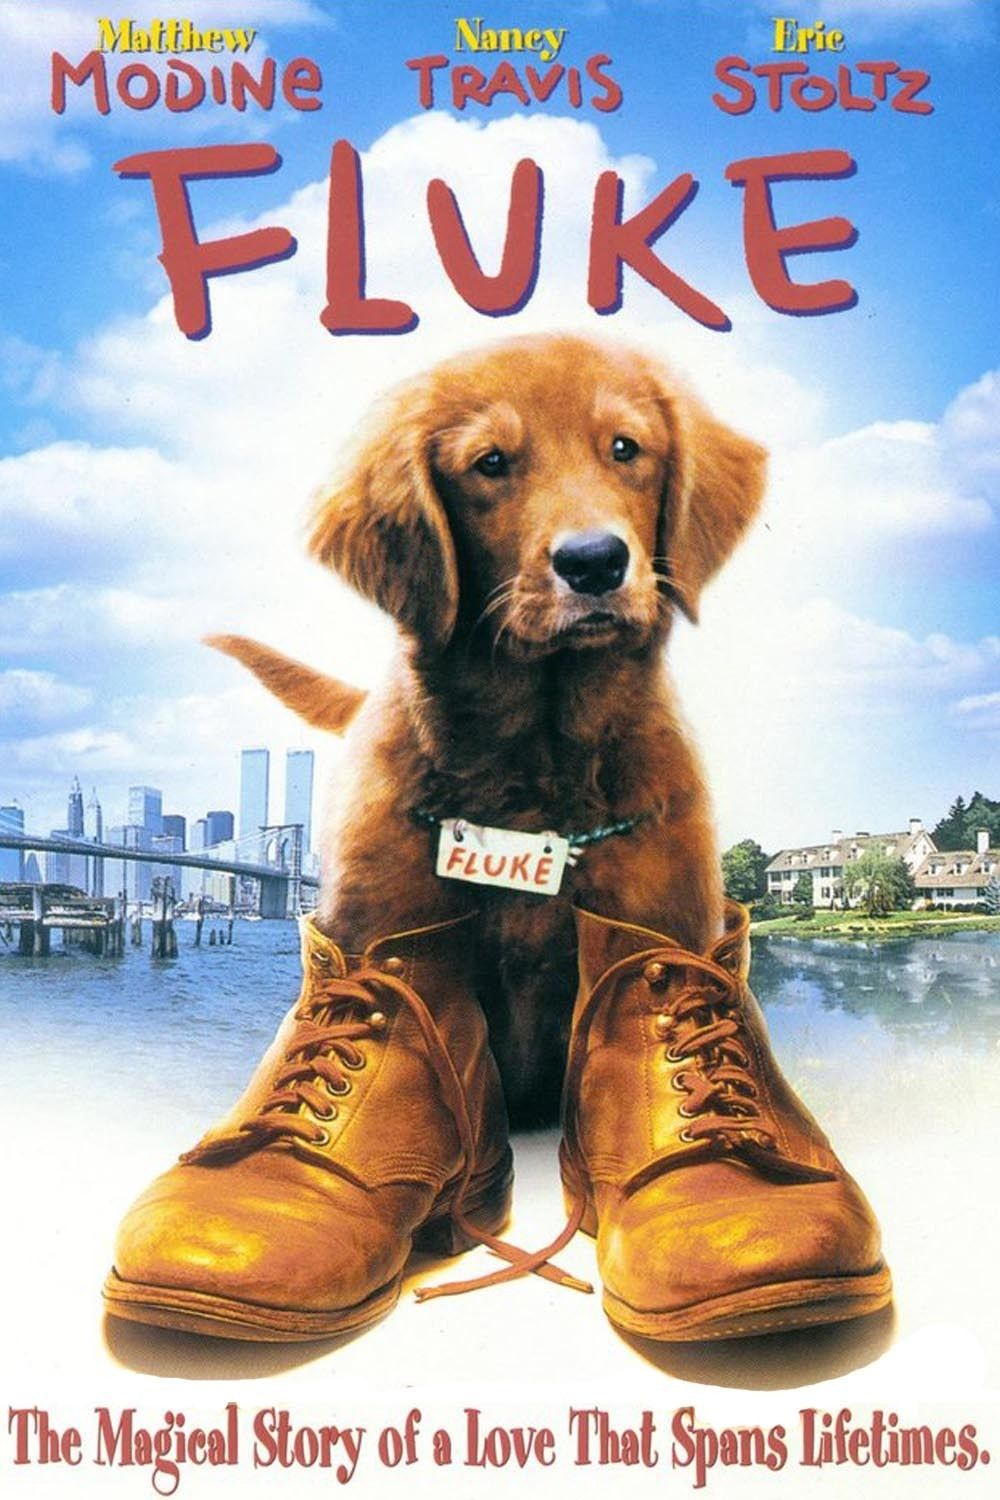 Such a good, love filled movie! It gets me every time